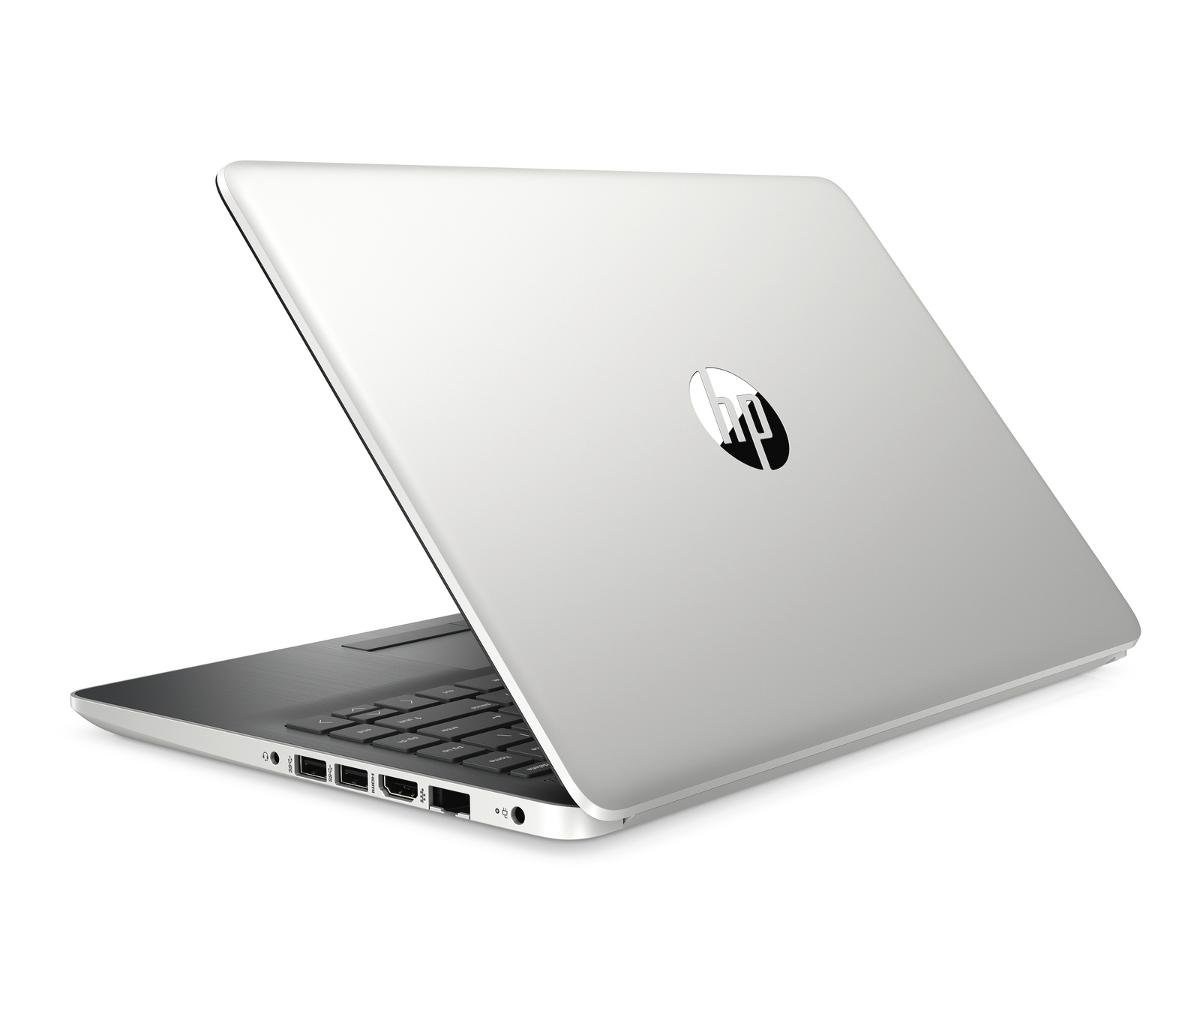 "Laptop HP 14-dk0001nw 6VR62EA, Ryzen 5 3500U, 8 GB RAM, 14"", 512 GB SSD, Windows 10 Home"